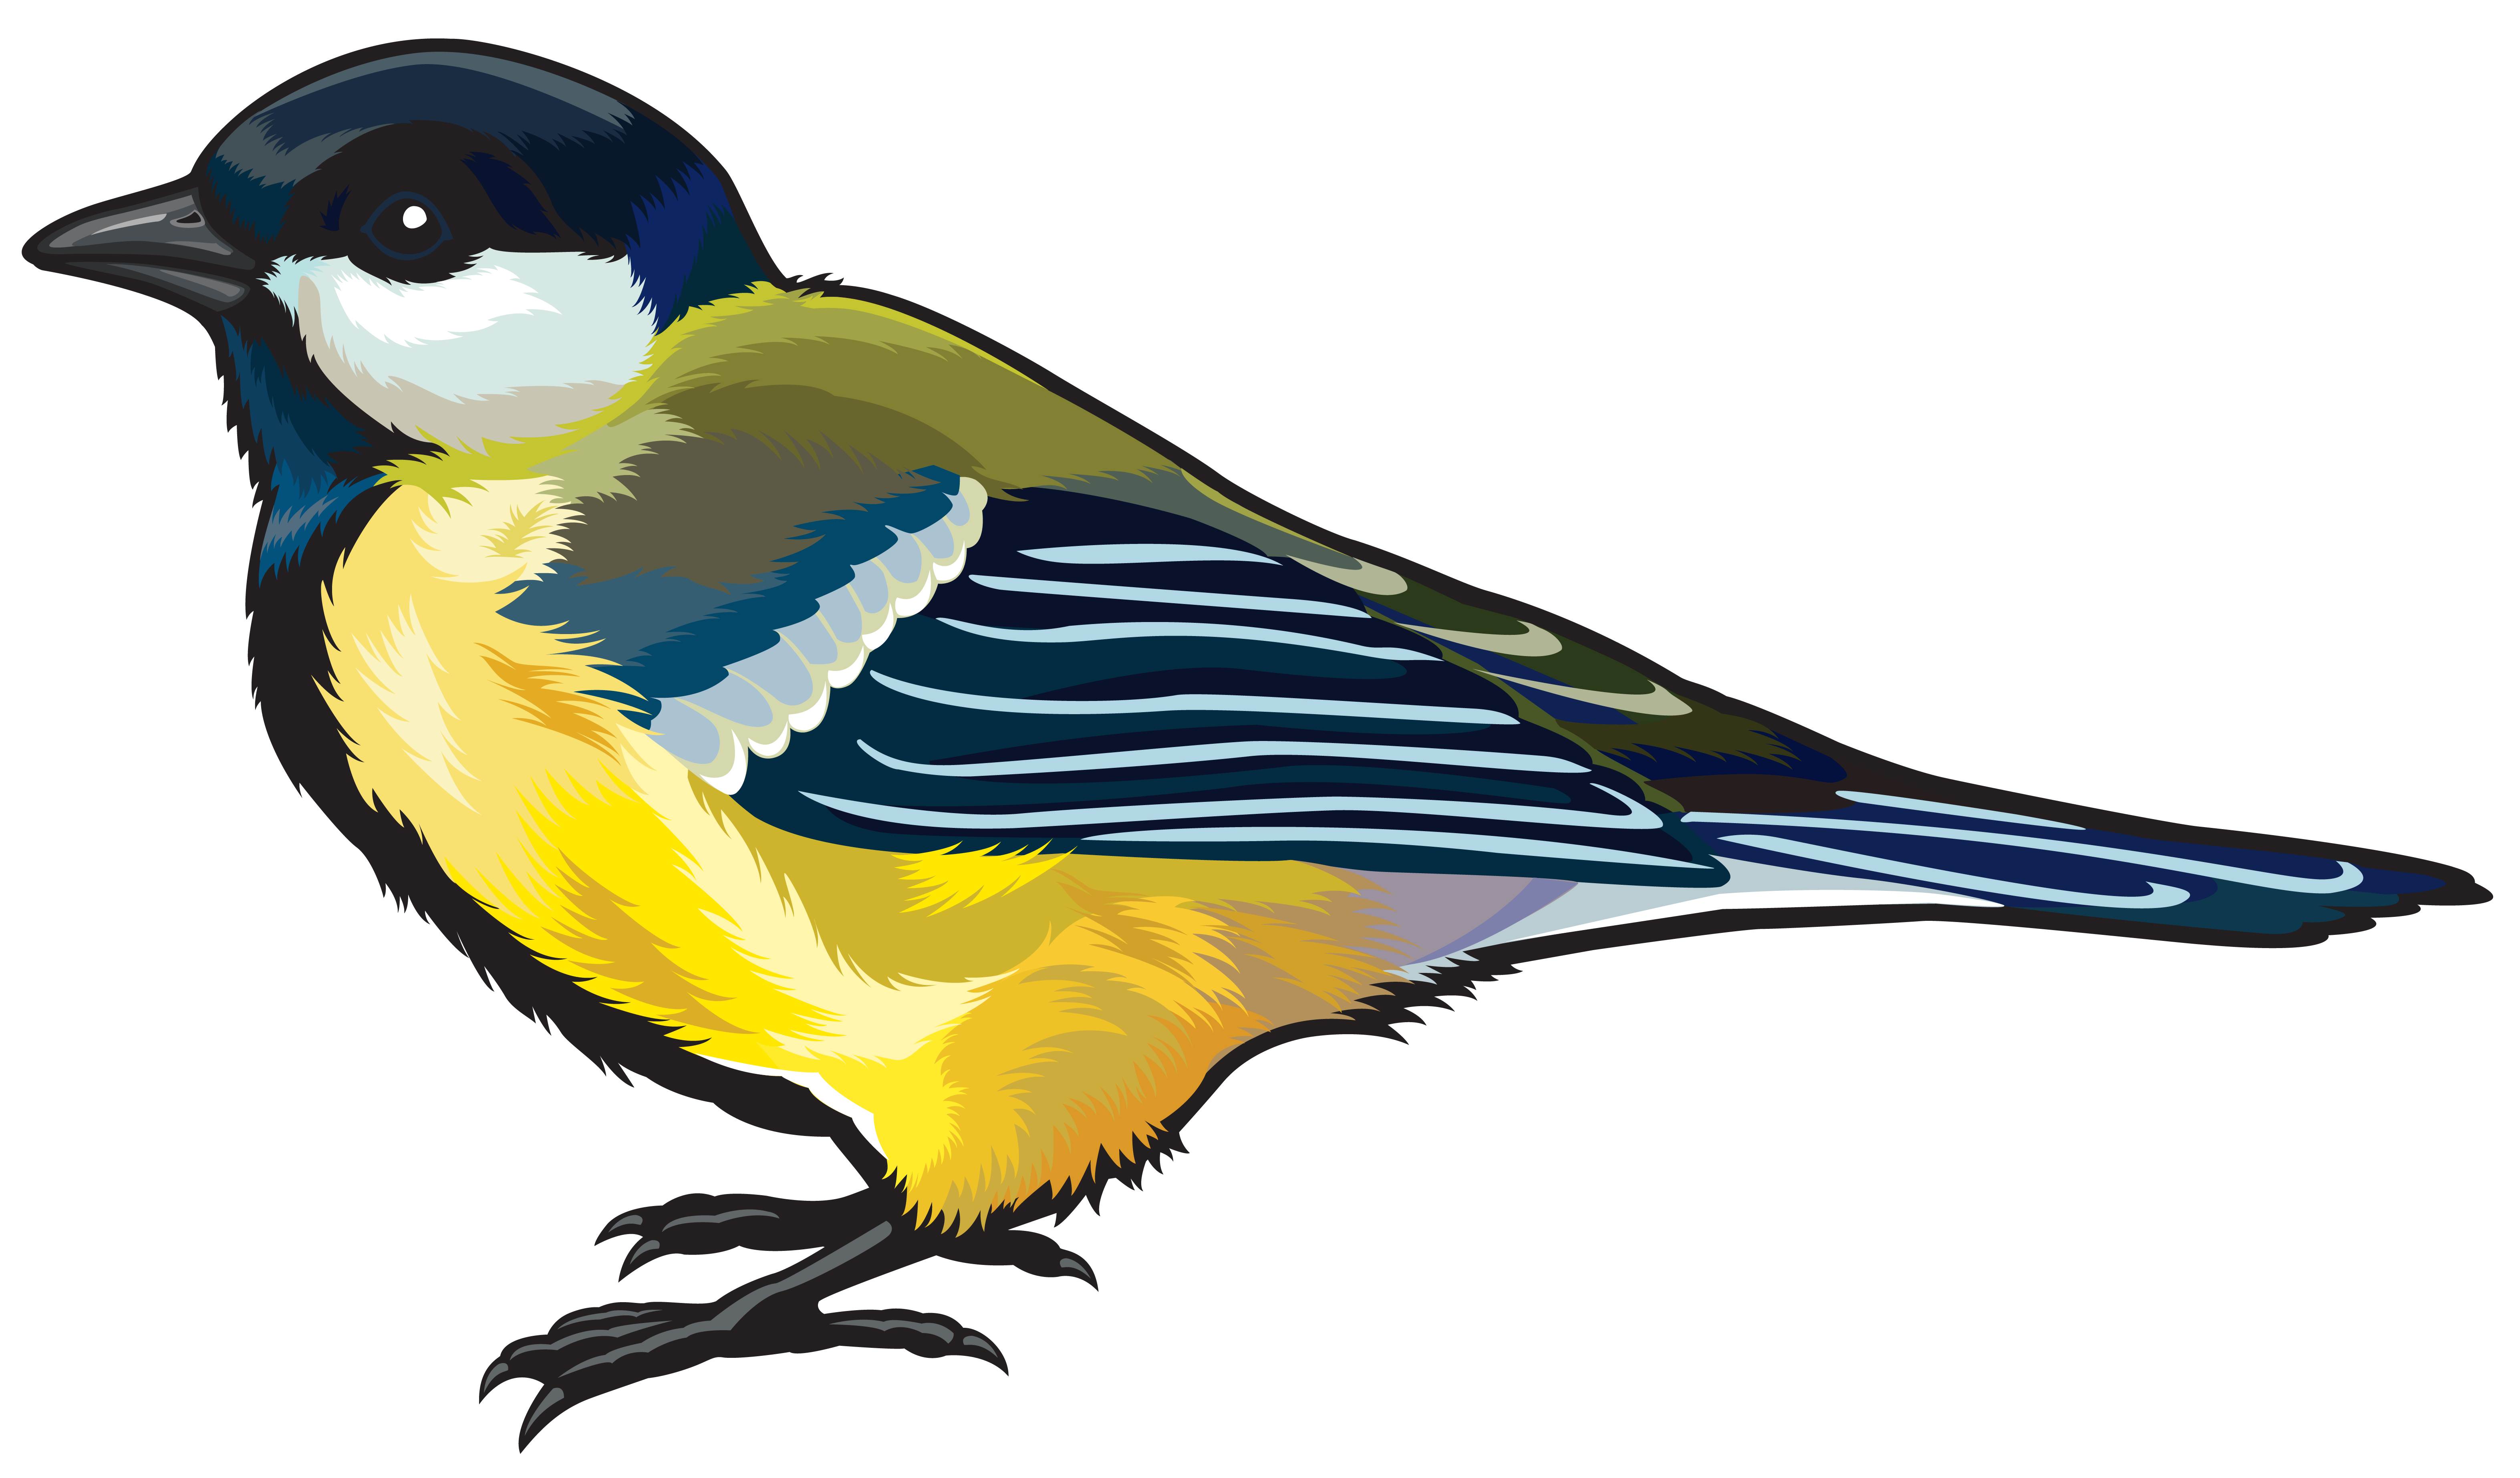 Bird clipart png. Large image gallery yopriceville